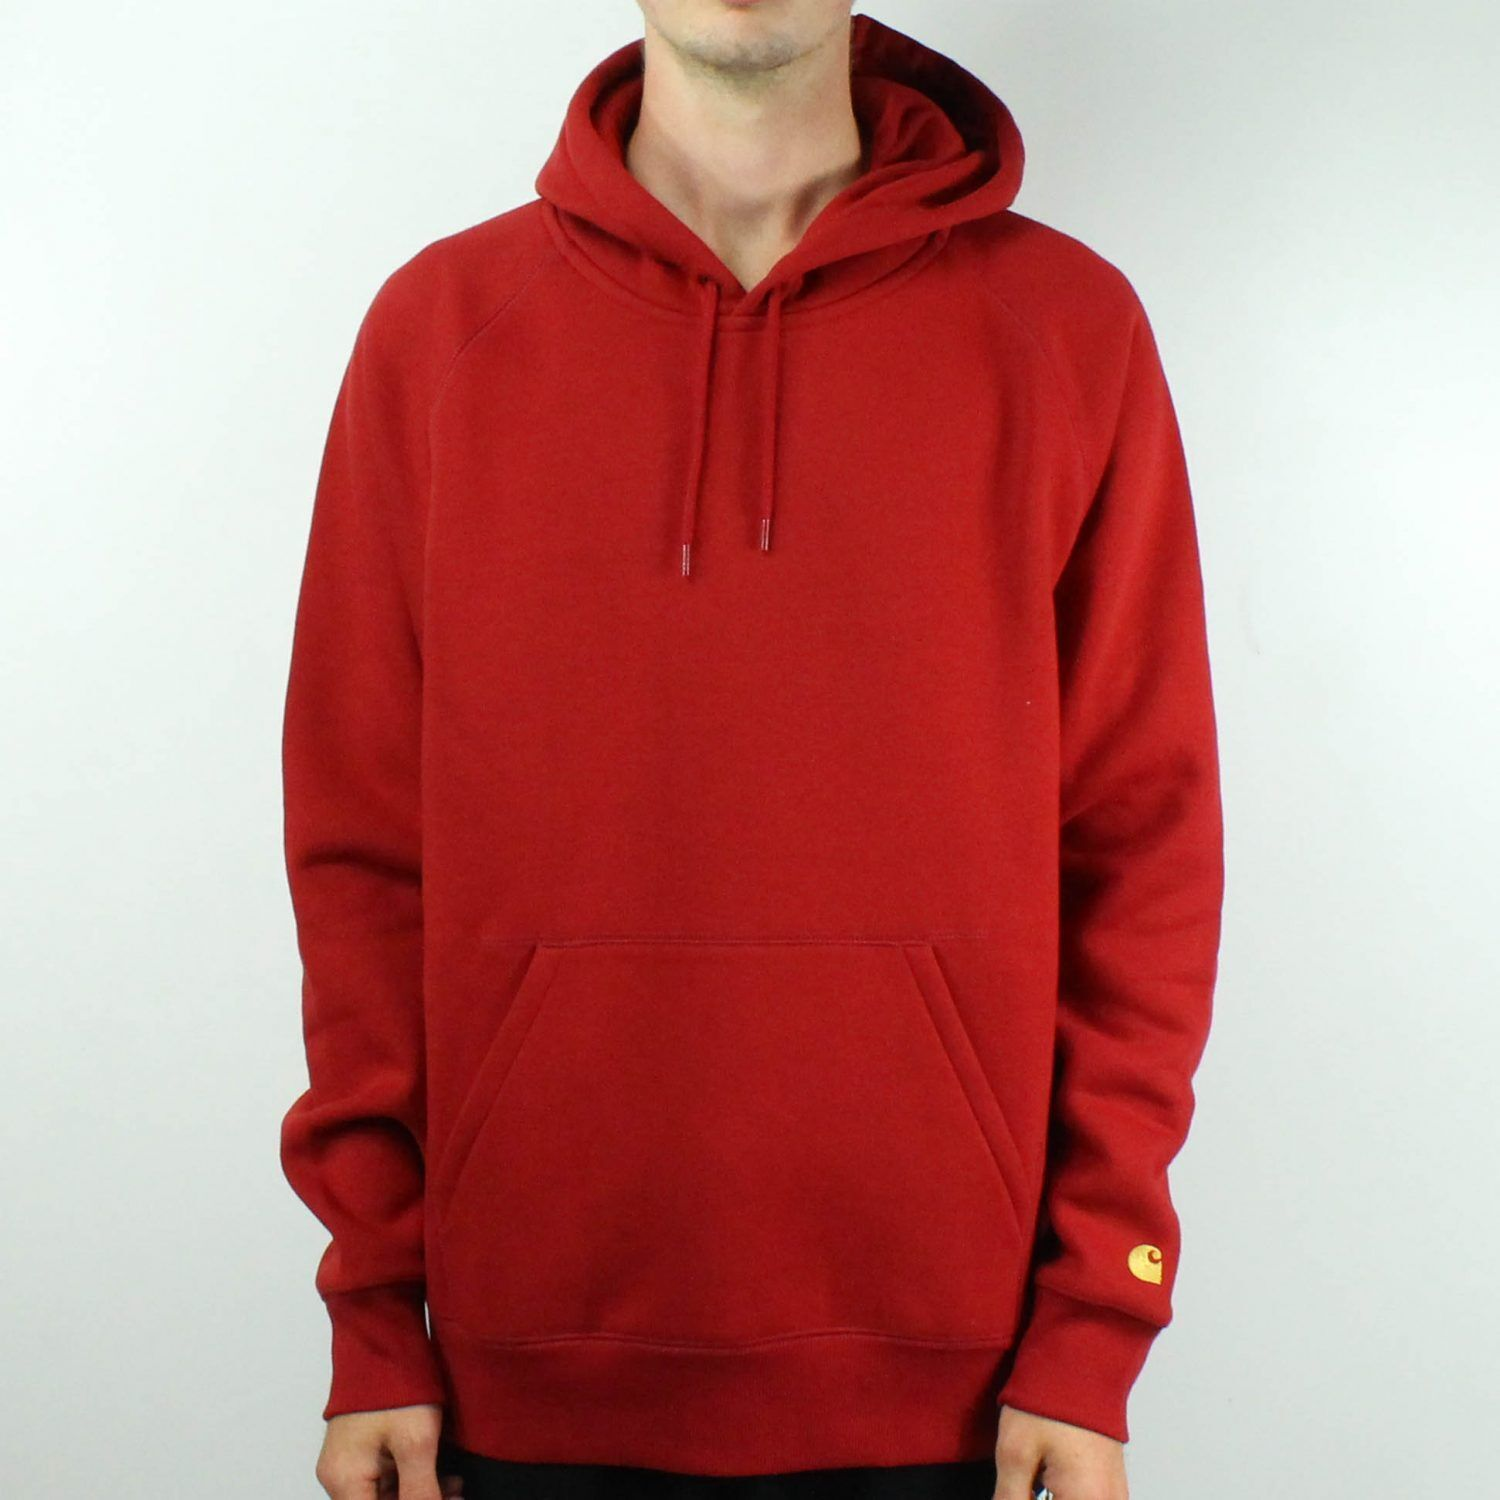 Carhartt Hooded Chase Sweatshirt Pullover in Blast ROT Brand New in S,M,L,XL